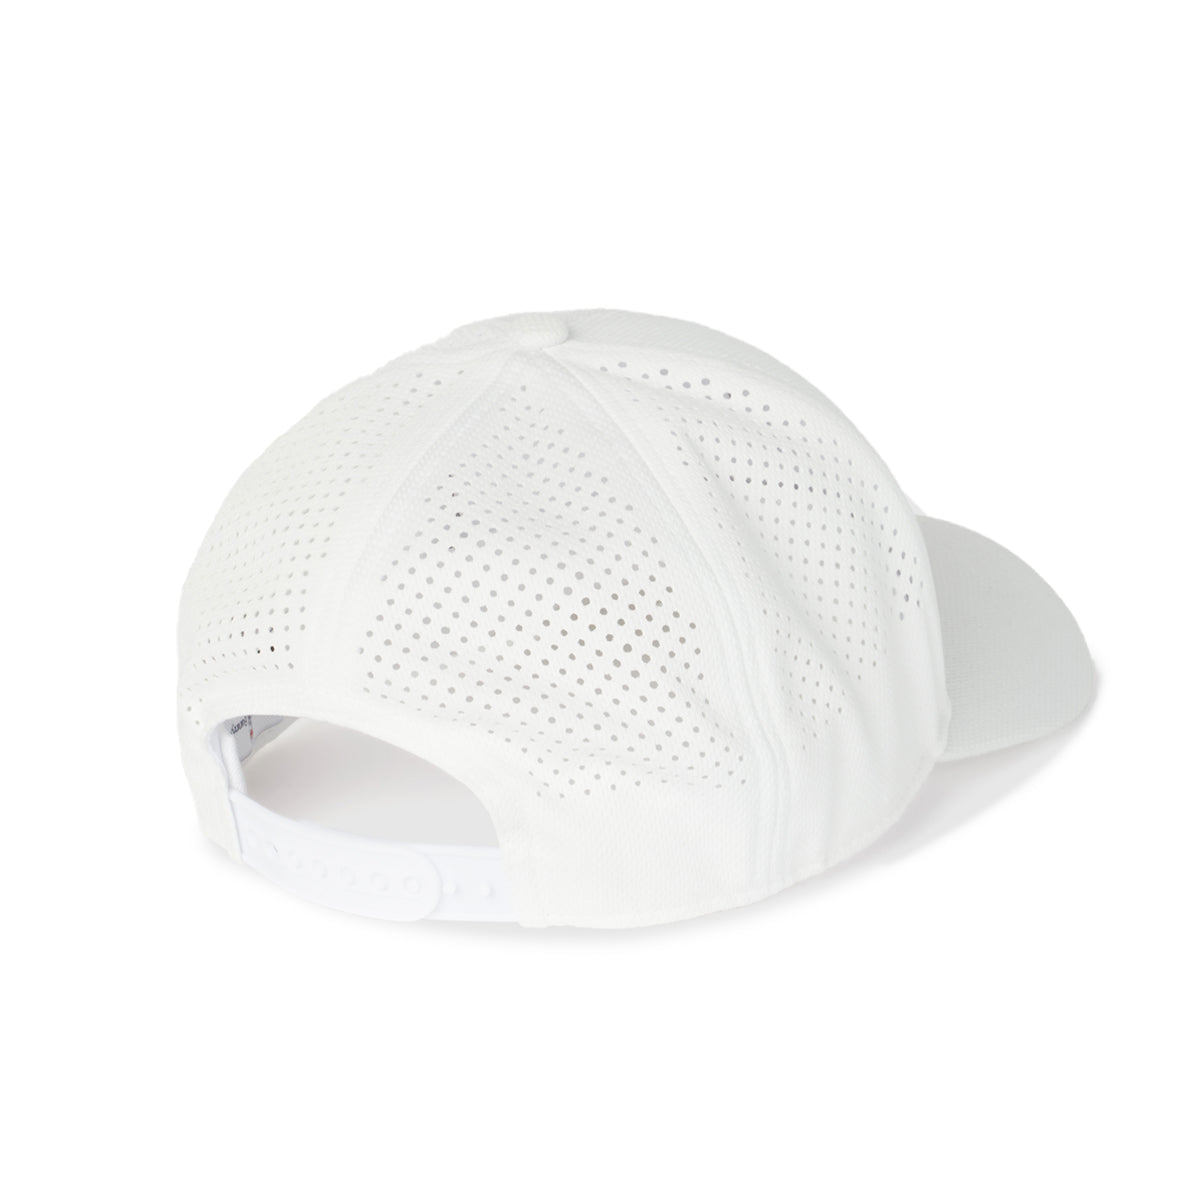 Psycho Bunny x SWIMS Baseball Cap - background::white,variant::white